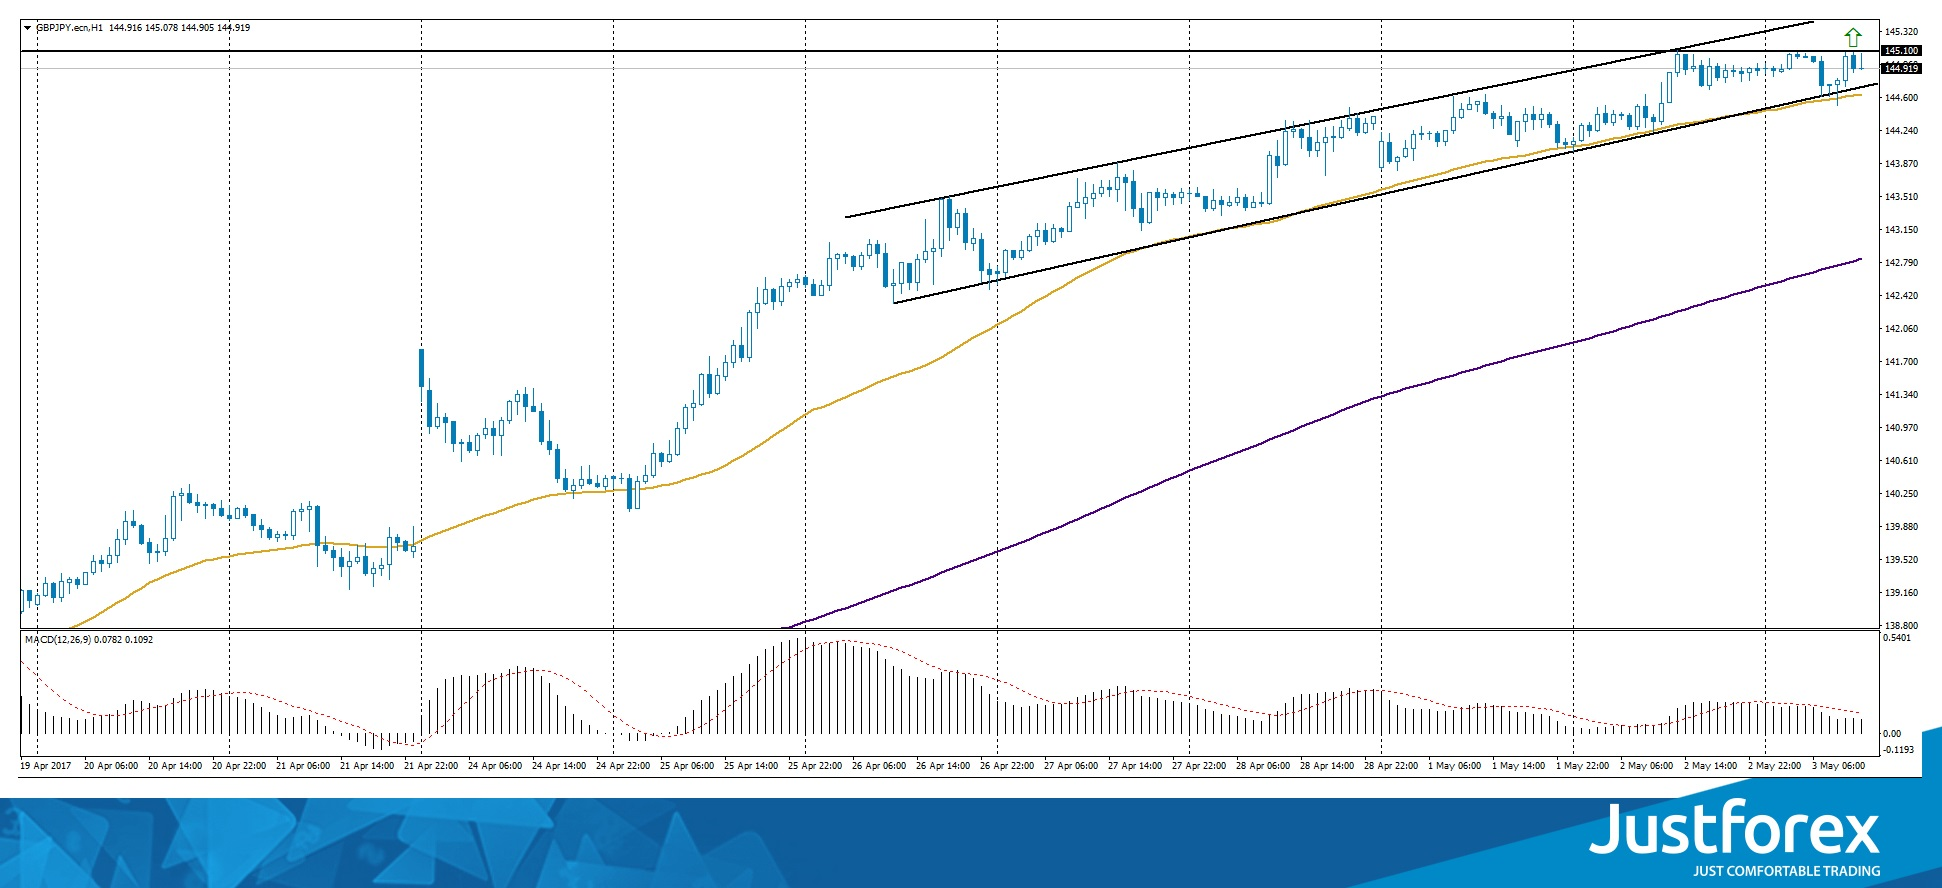 GBP/JPY rising channel